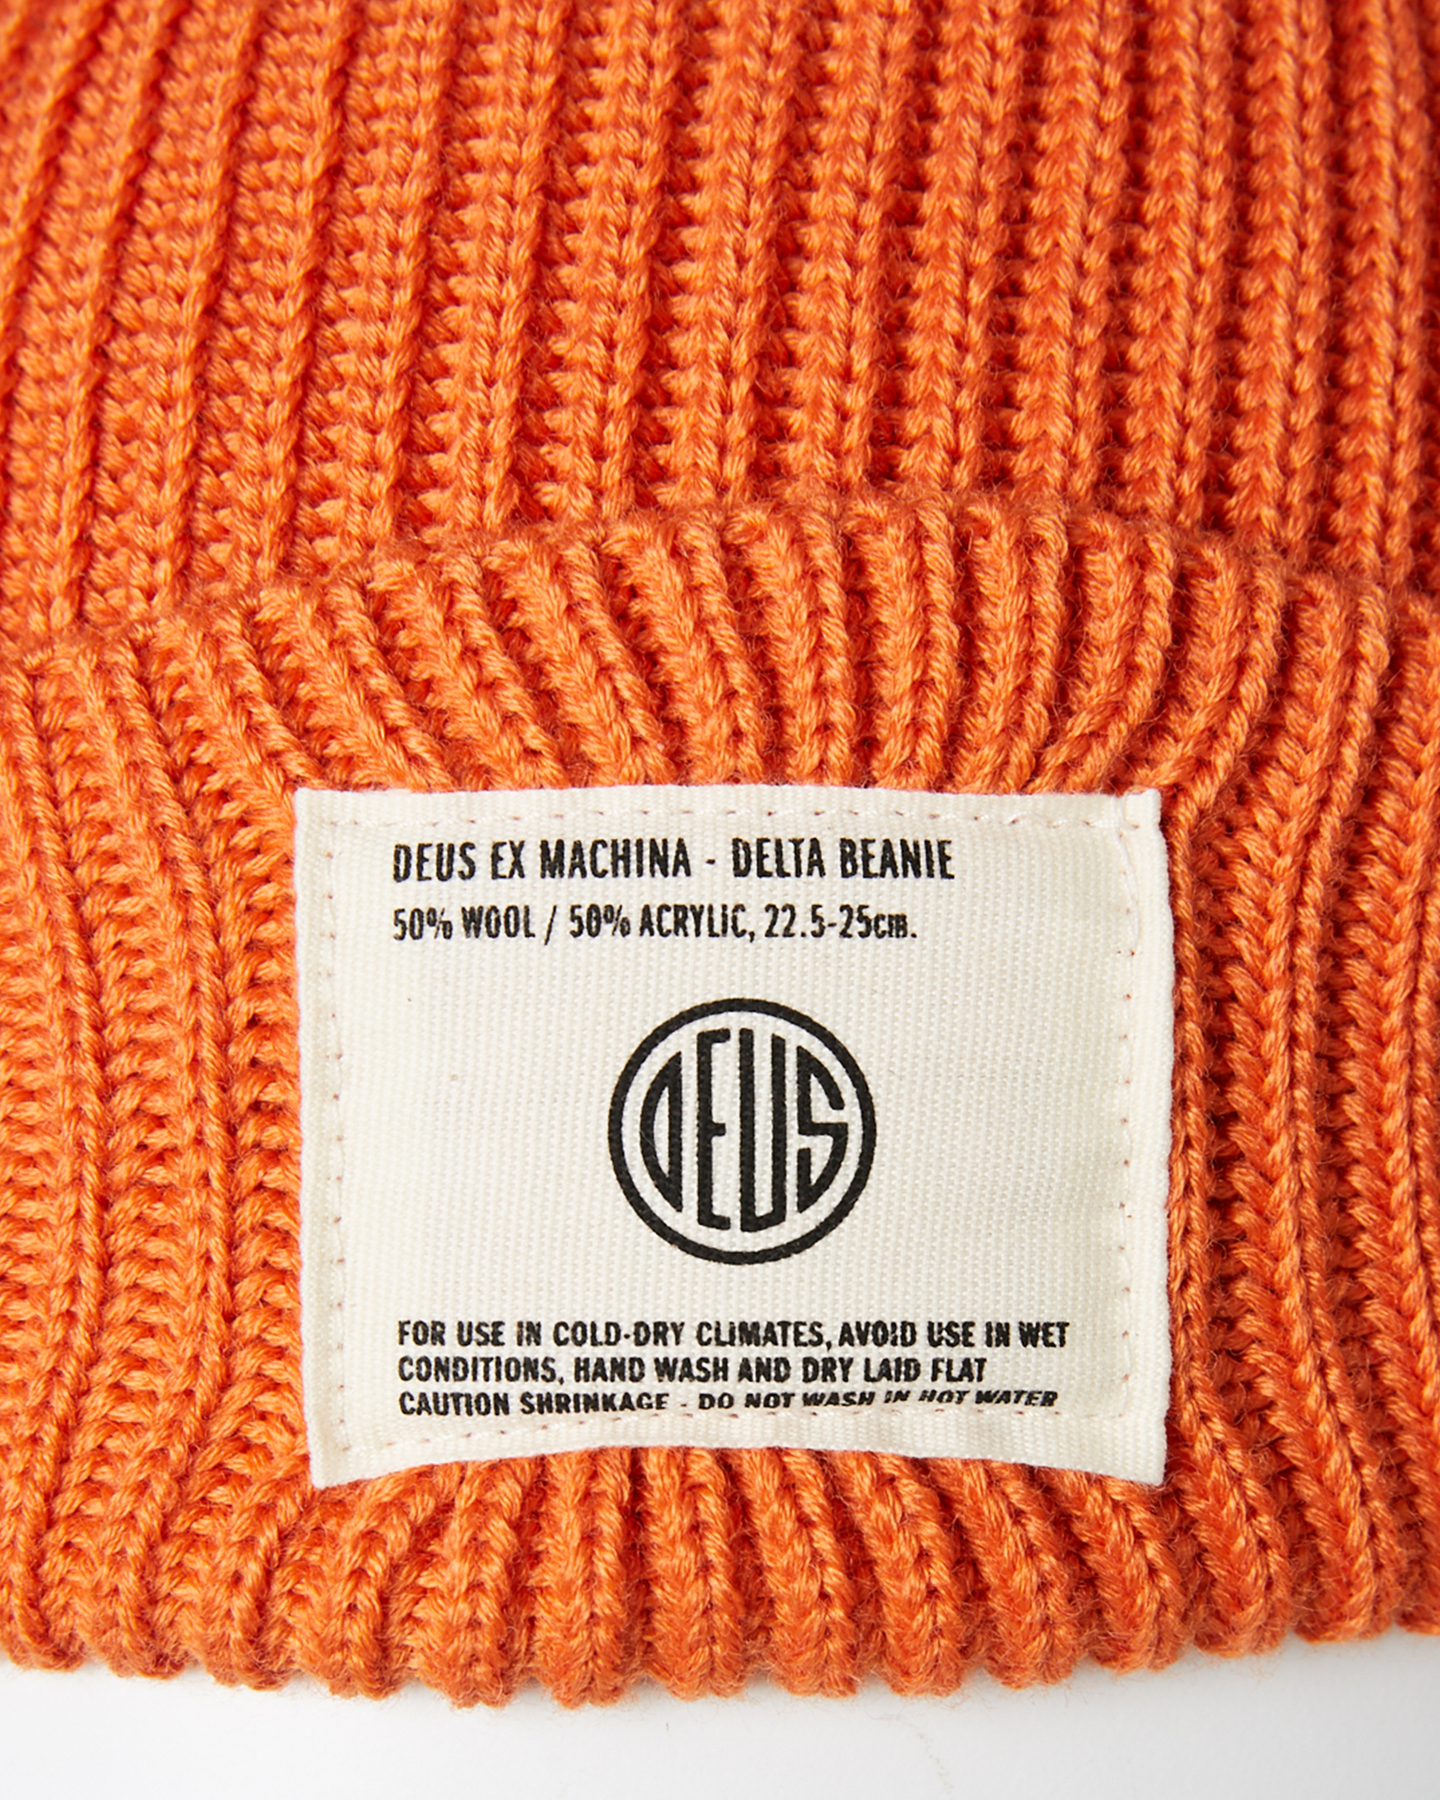 fa7c83d16 Details about New Deus Ex Machina Men's Delta Beanie Wool Acrylic Red